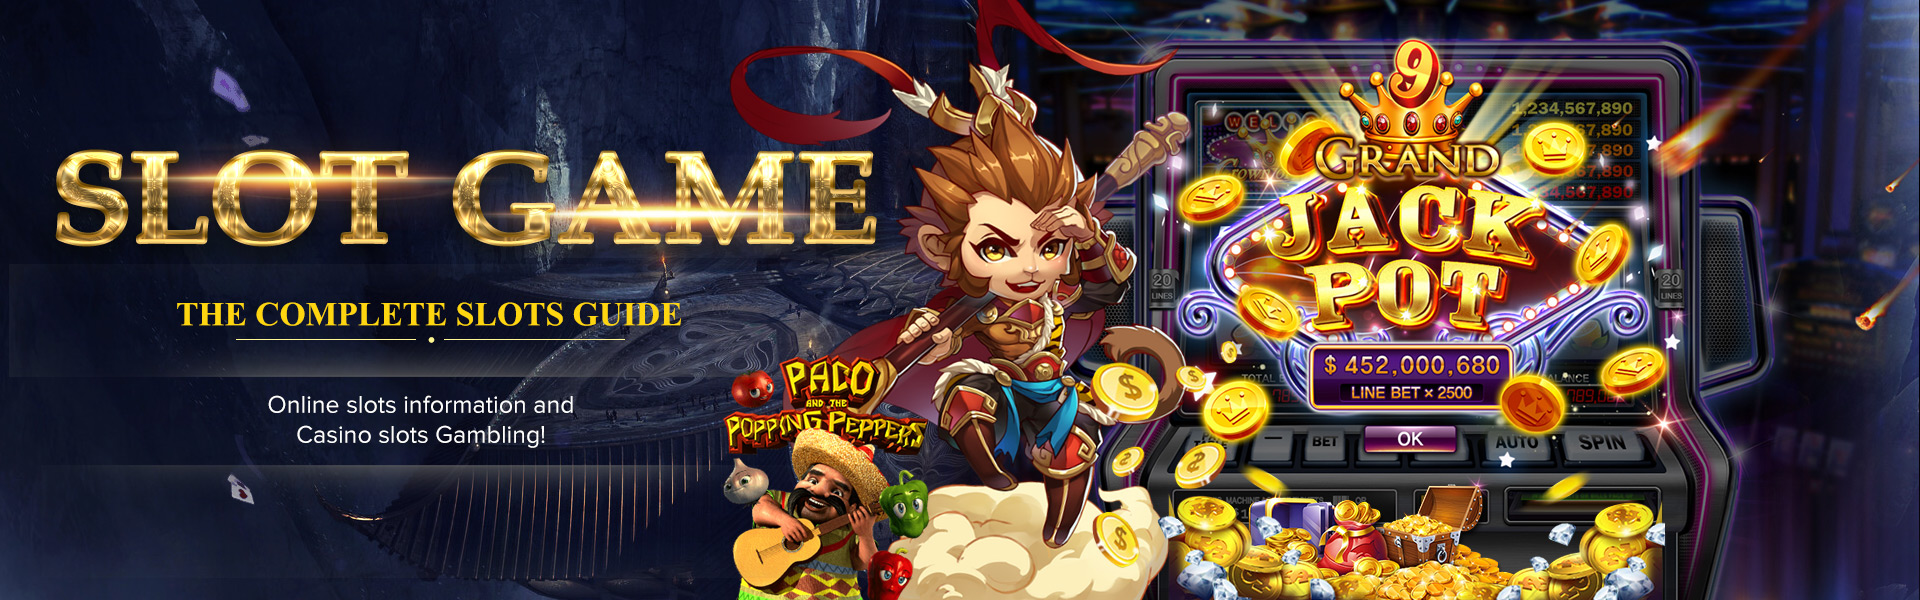 How to Play Online Slots Using Small Capital